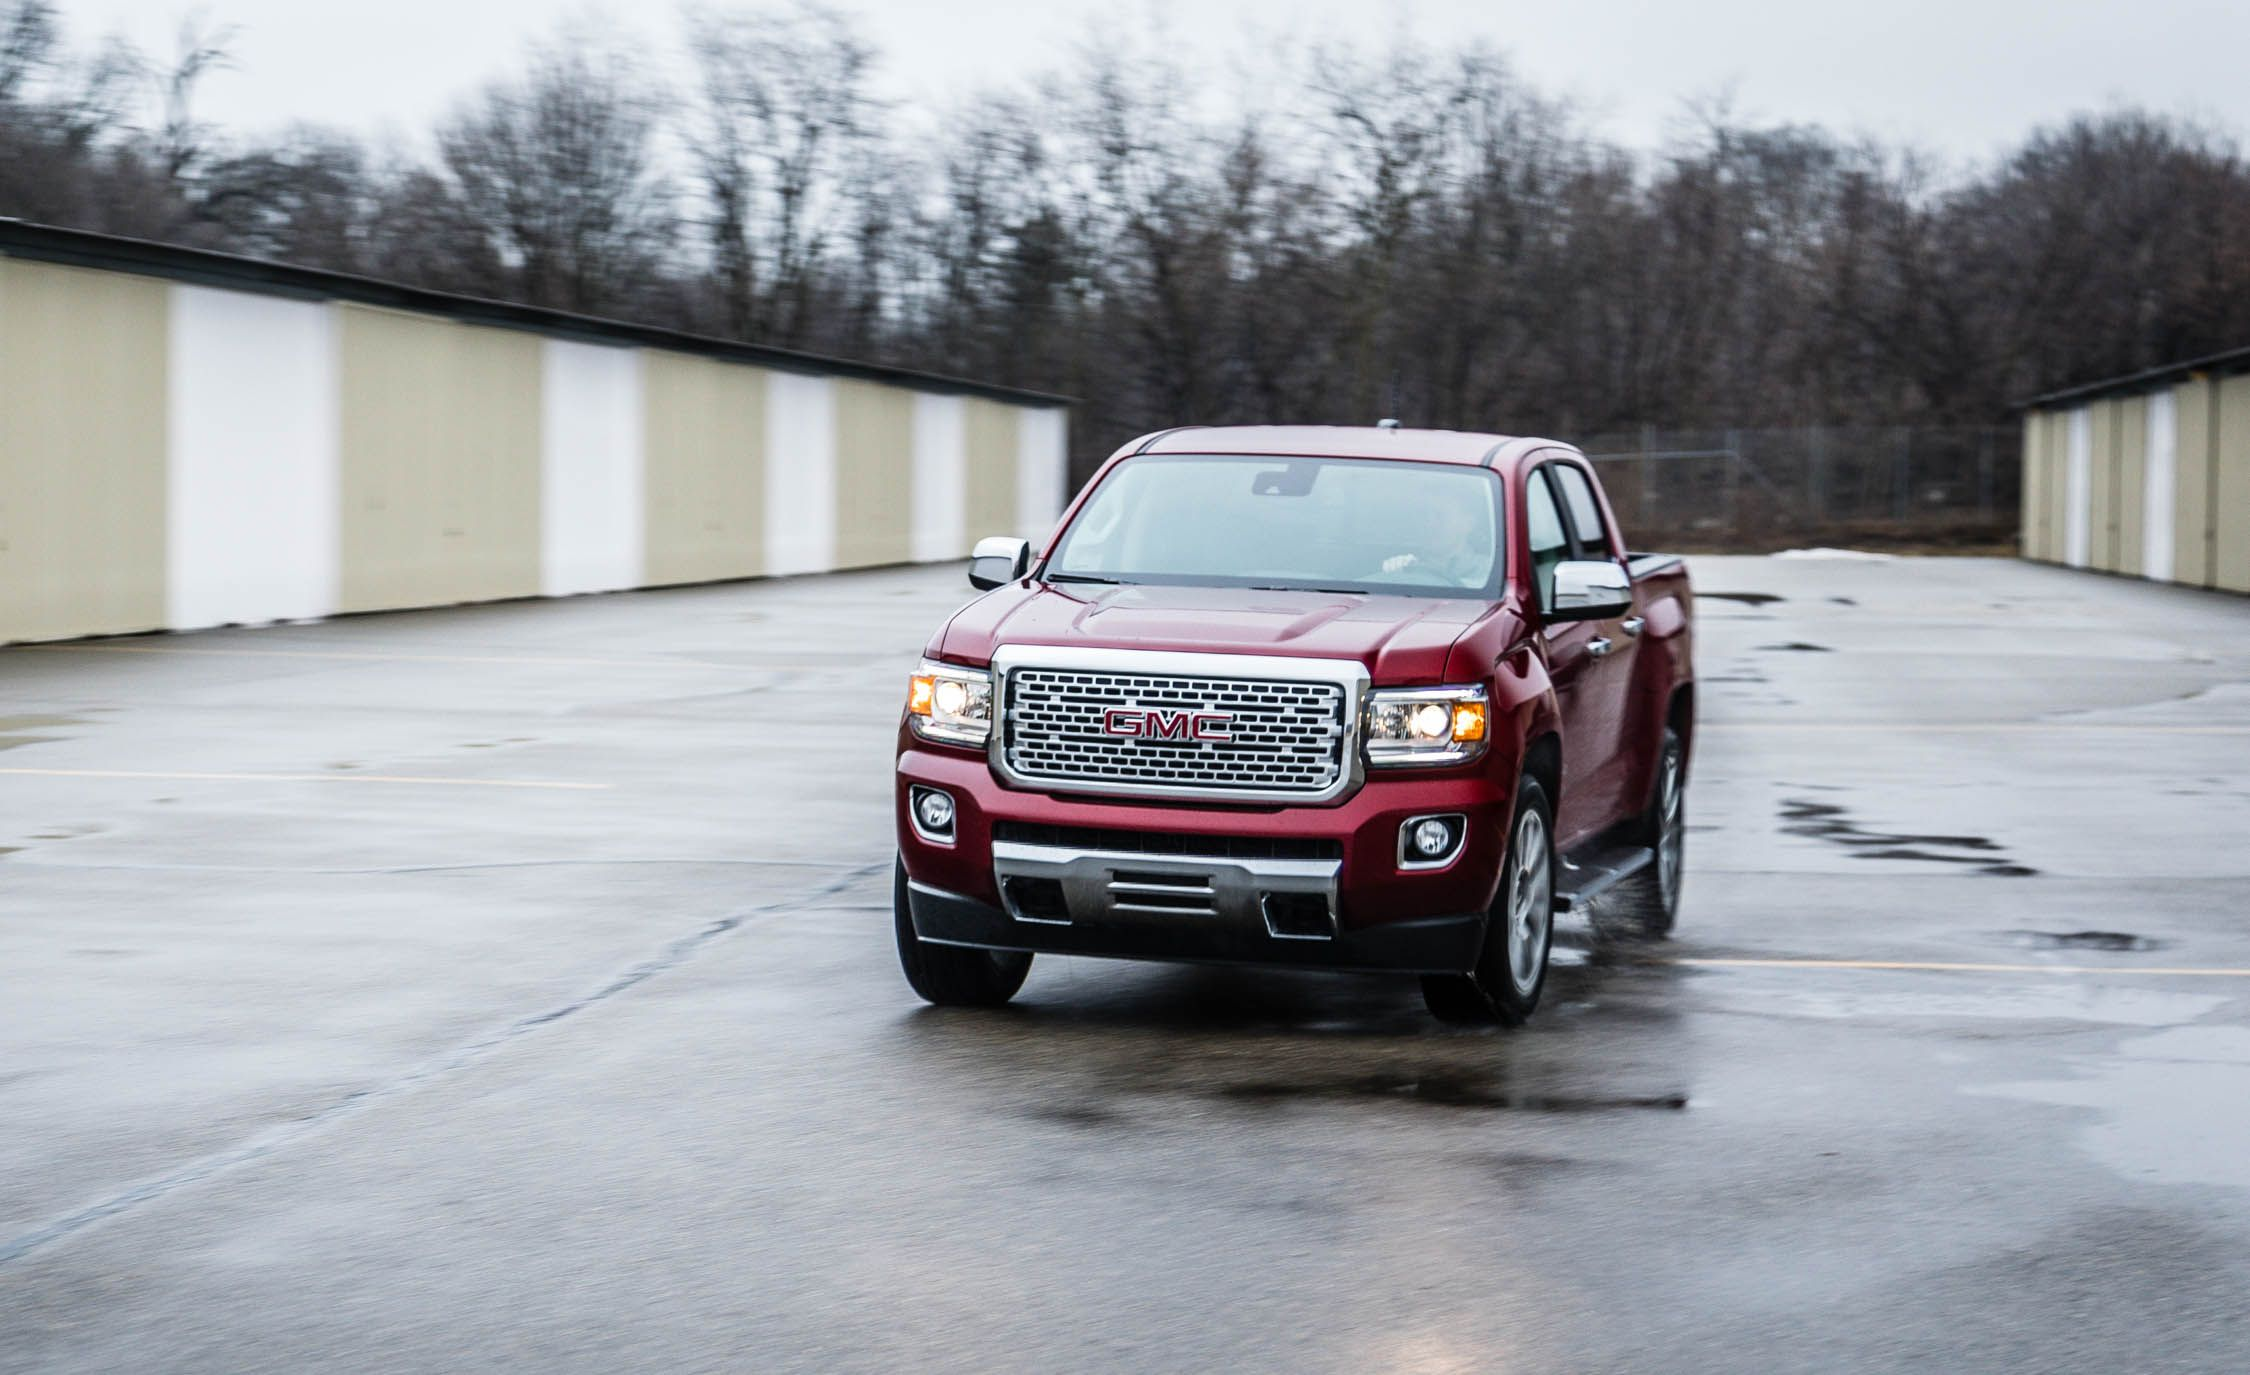 gmc rumors a reviews car drops of folding sierra review split canyon with images tailgate denali